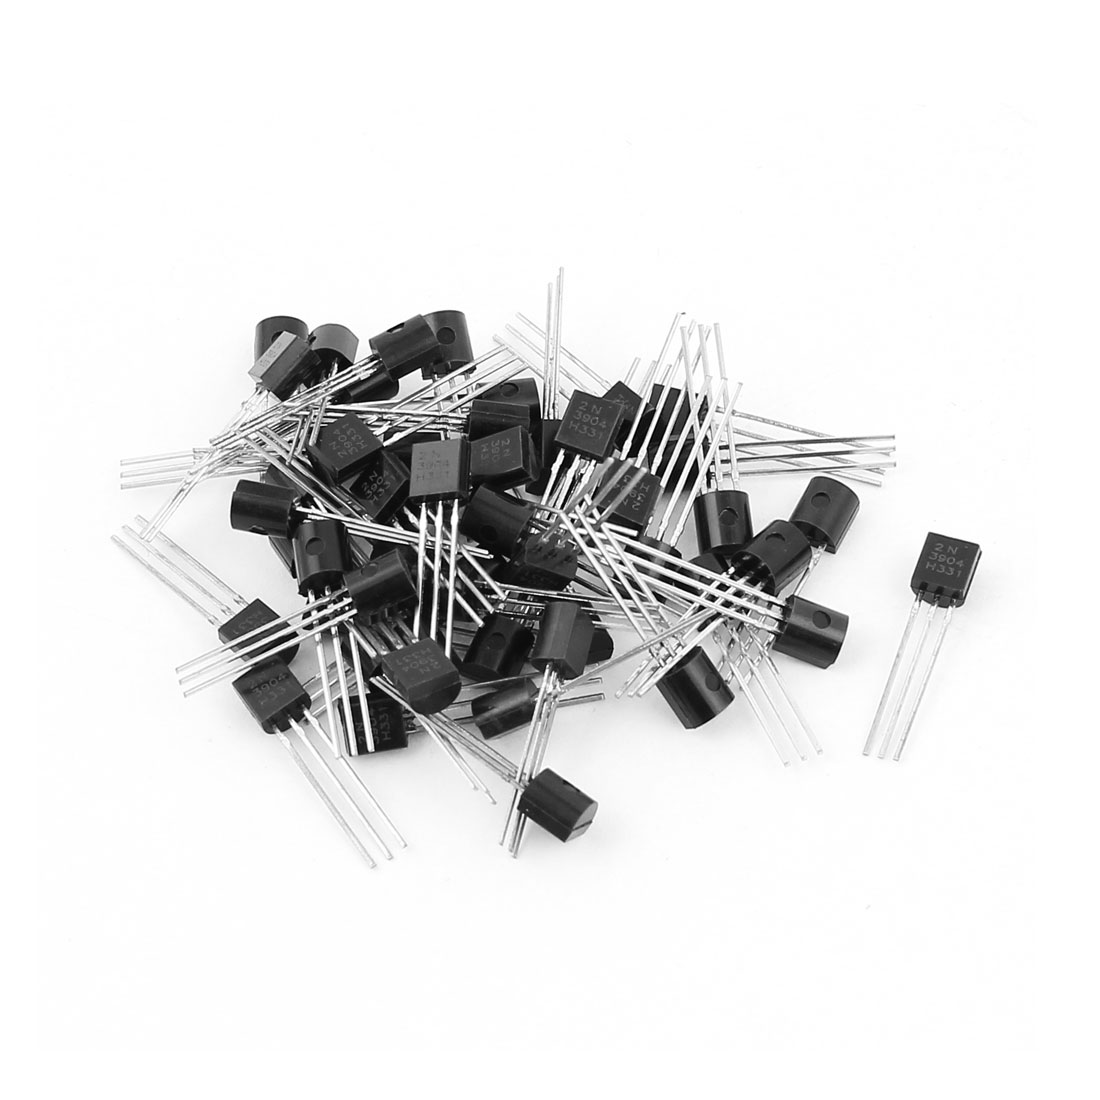 50 Pcs 2N3904 TO-92 NPN Bipolar Low Power Junction Transistors 40V 0.2A